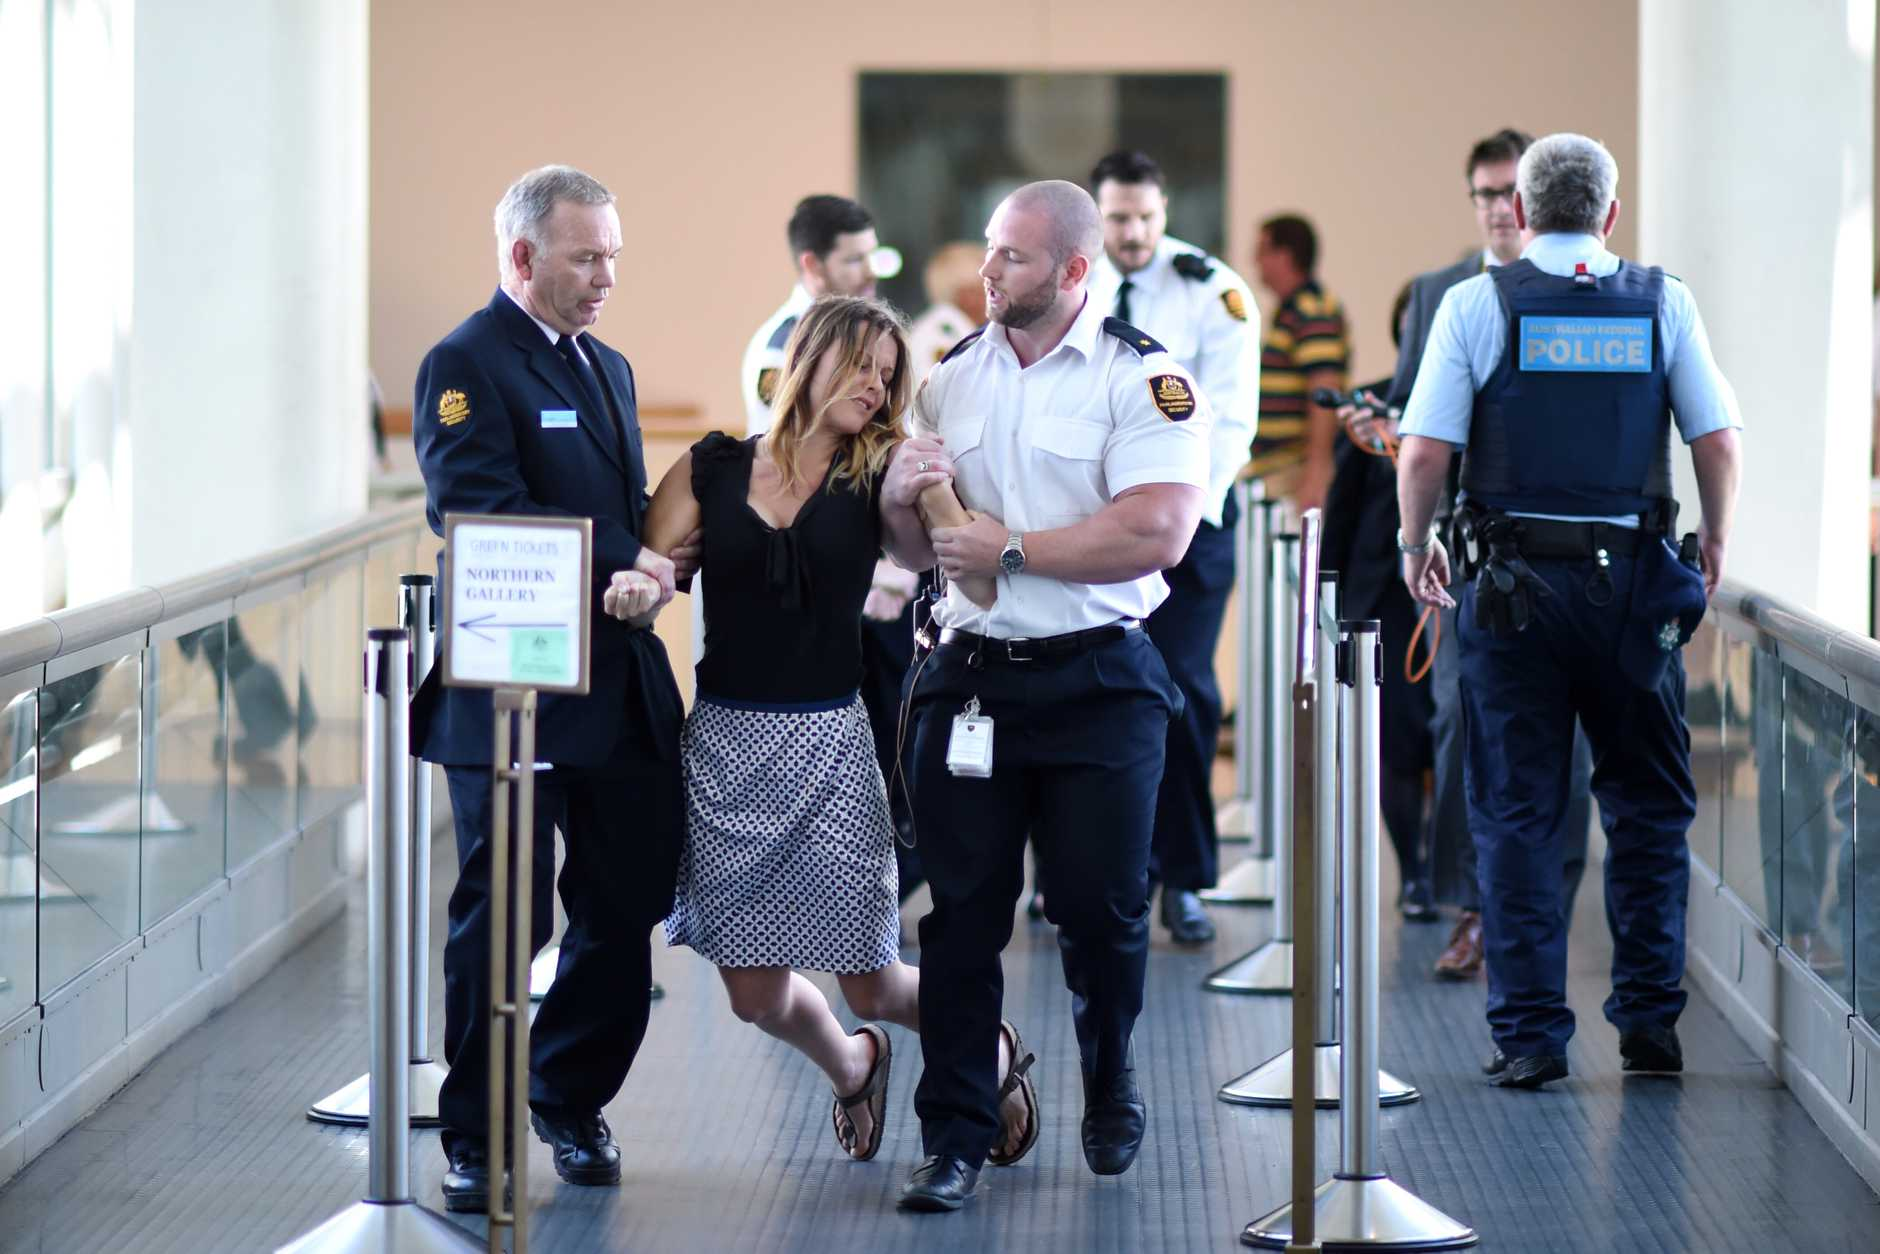 Security guards carry a protester out of the House of Representatives at Parliament House in Canberra, Wednesday, Nov. 30, 2016. Question Time was adjourned due to pro refugee protesters interupting proceedings.